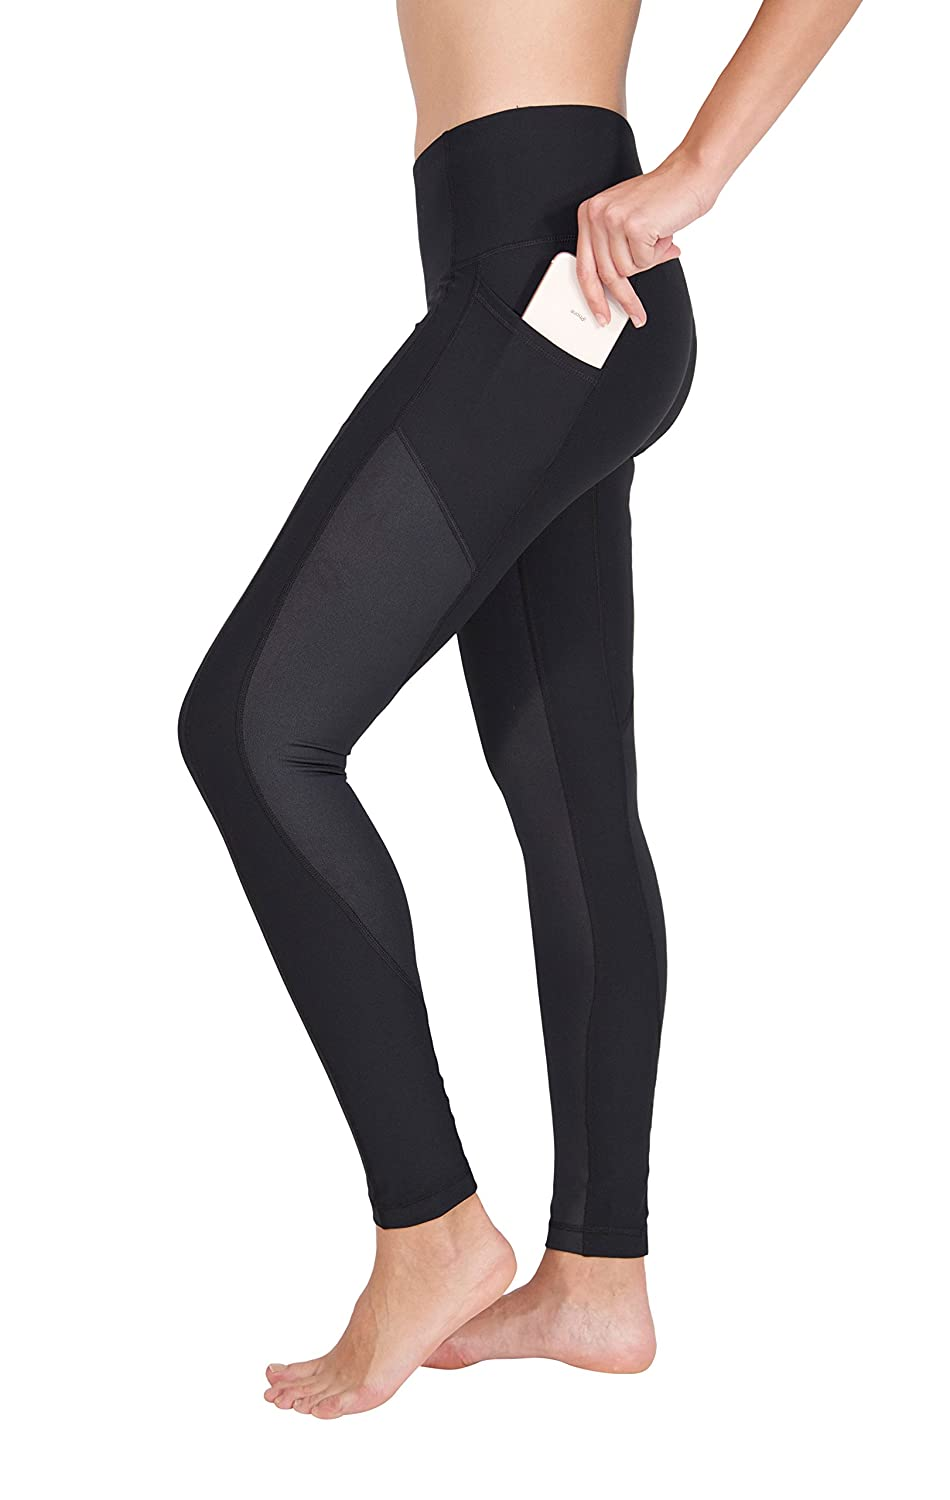 1d67ff2d4b6856 Order a pair of our 90 Degree by Reflex High Waist Ciré Leggings with Side  Pockets to add to your wardrobe! These leggings boast a high quality, ...